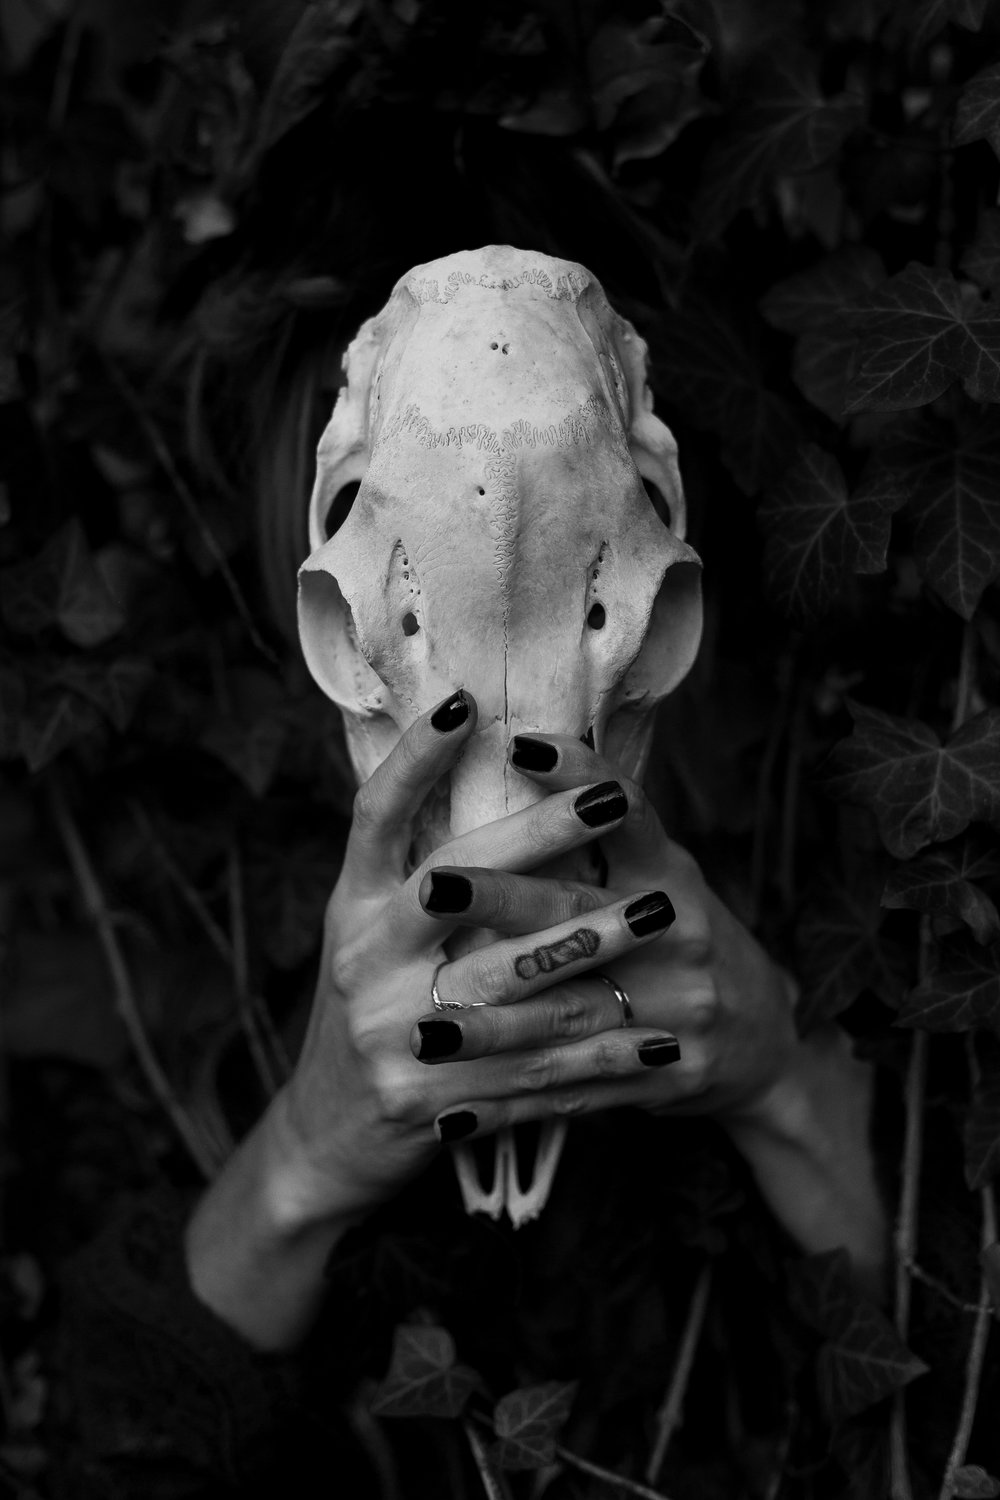 Woman with skull in Ridgewood, New Jersey for Halloween. Photo by Laughing Heart Photography.